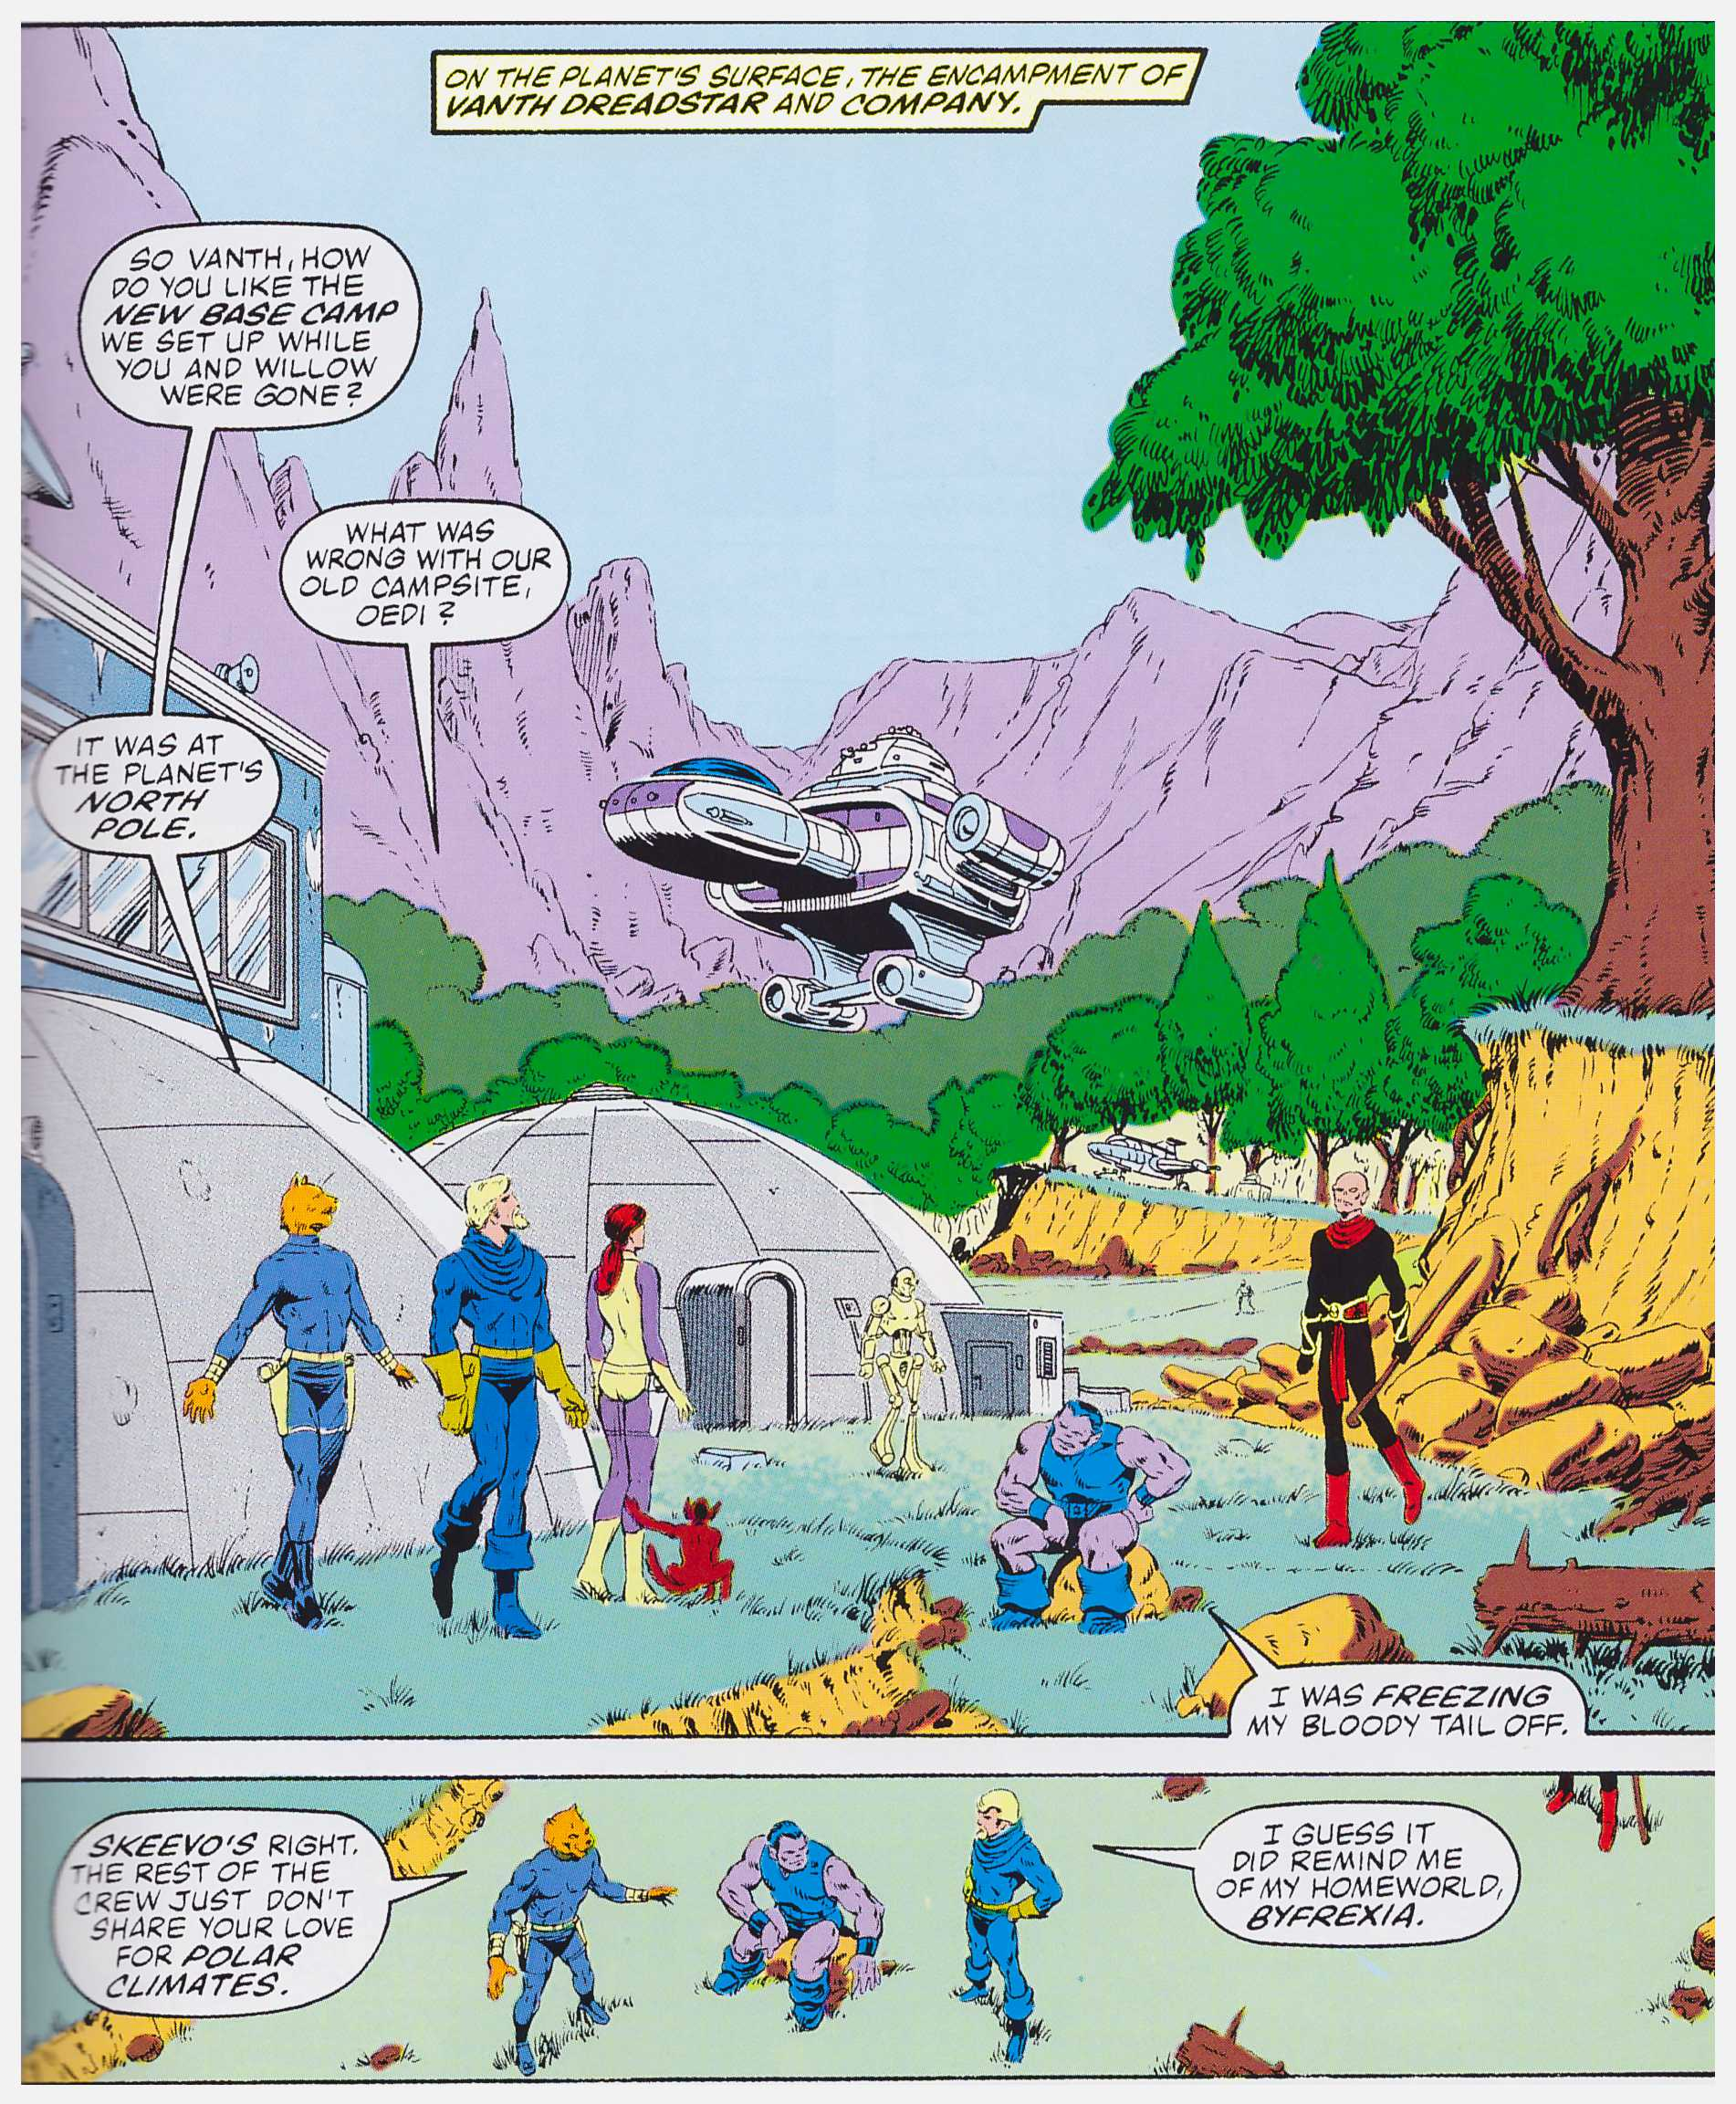 Definitive Dreadstar 2 review